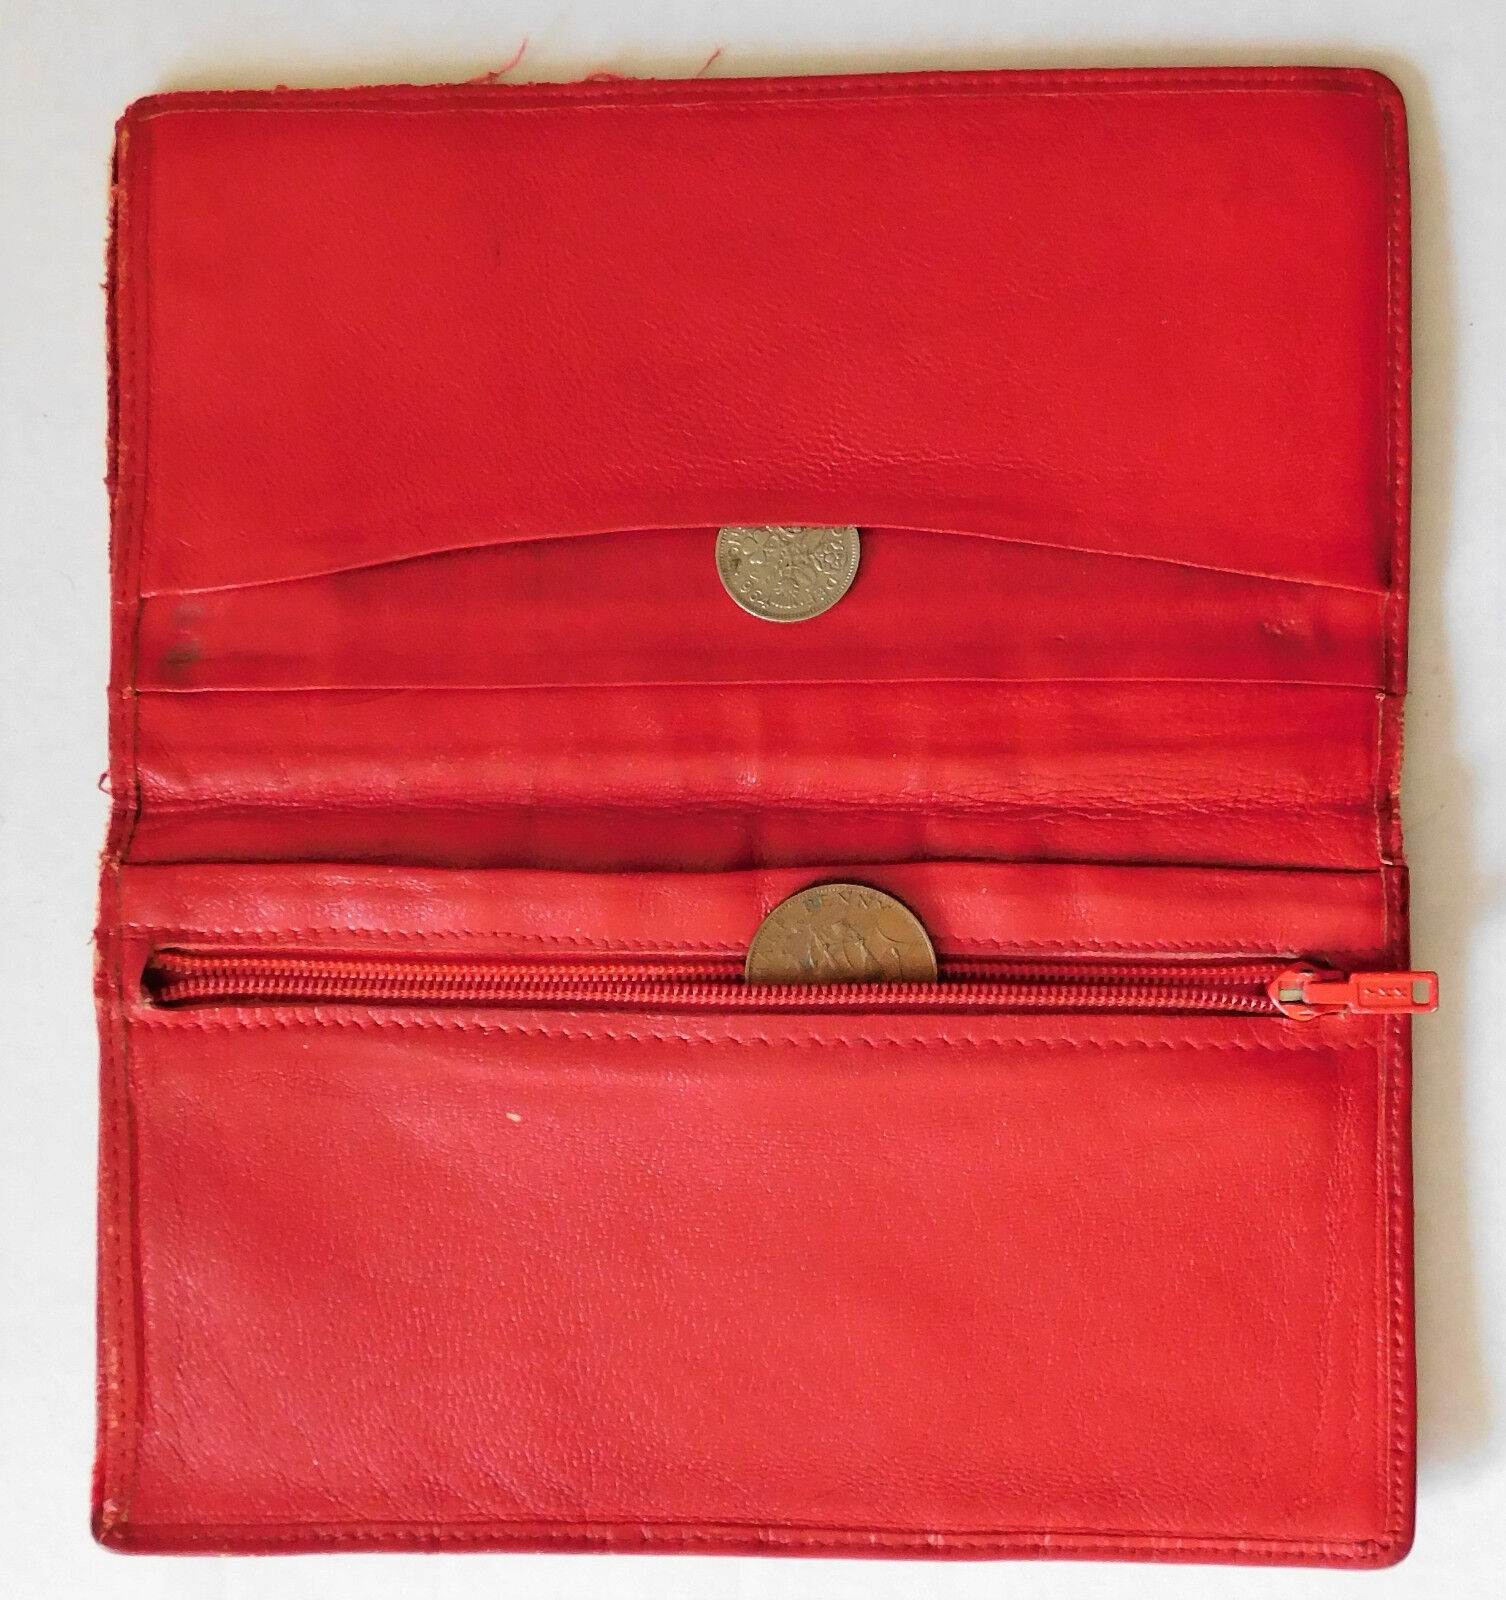 Tatty old red wallet with zipped coin purse section vintage 1950s 1960s 1970s